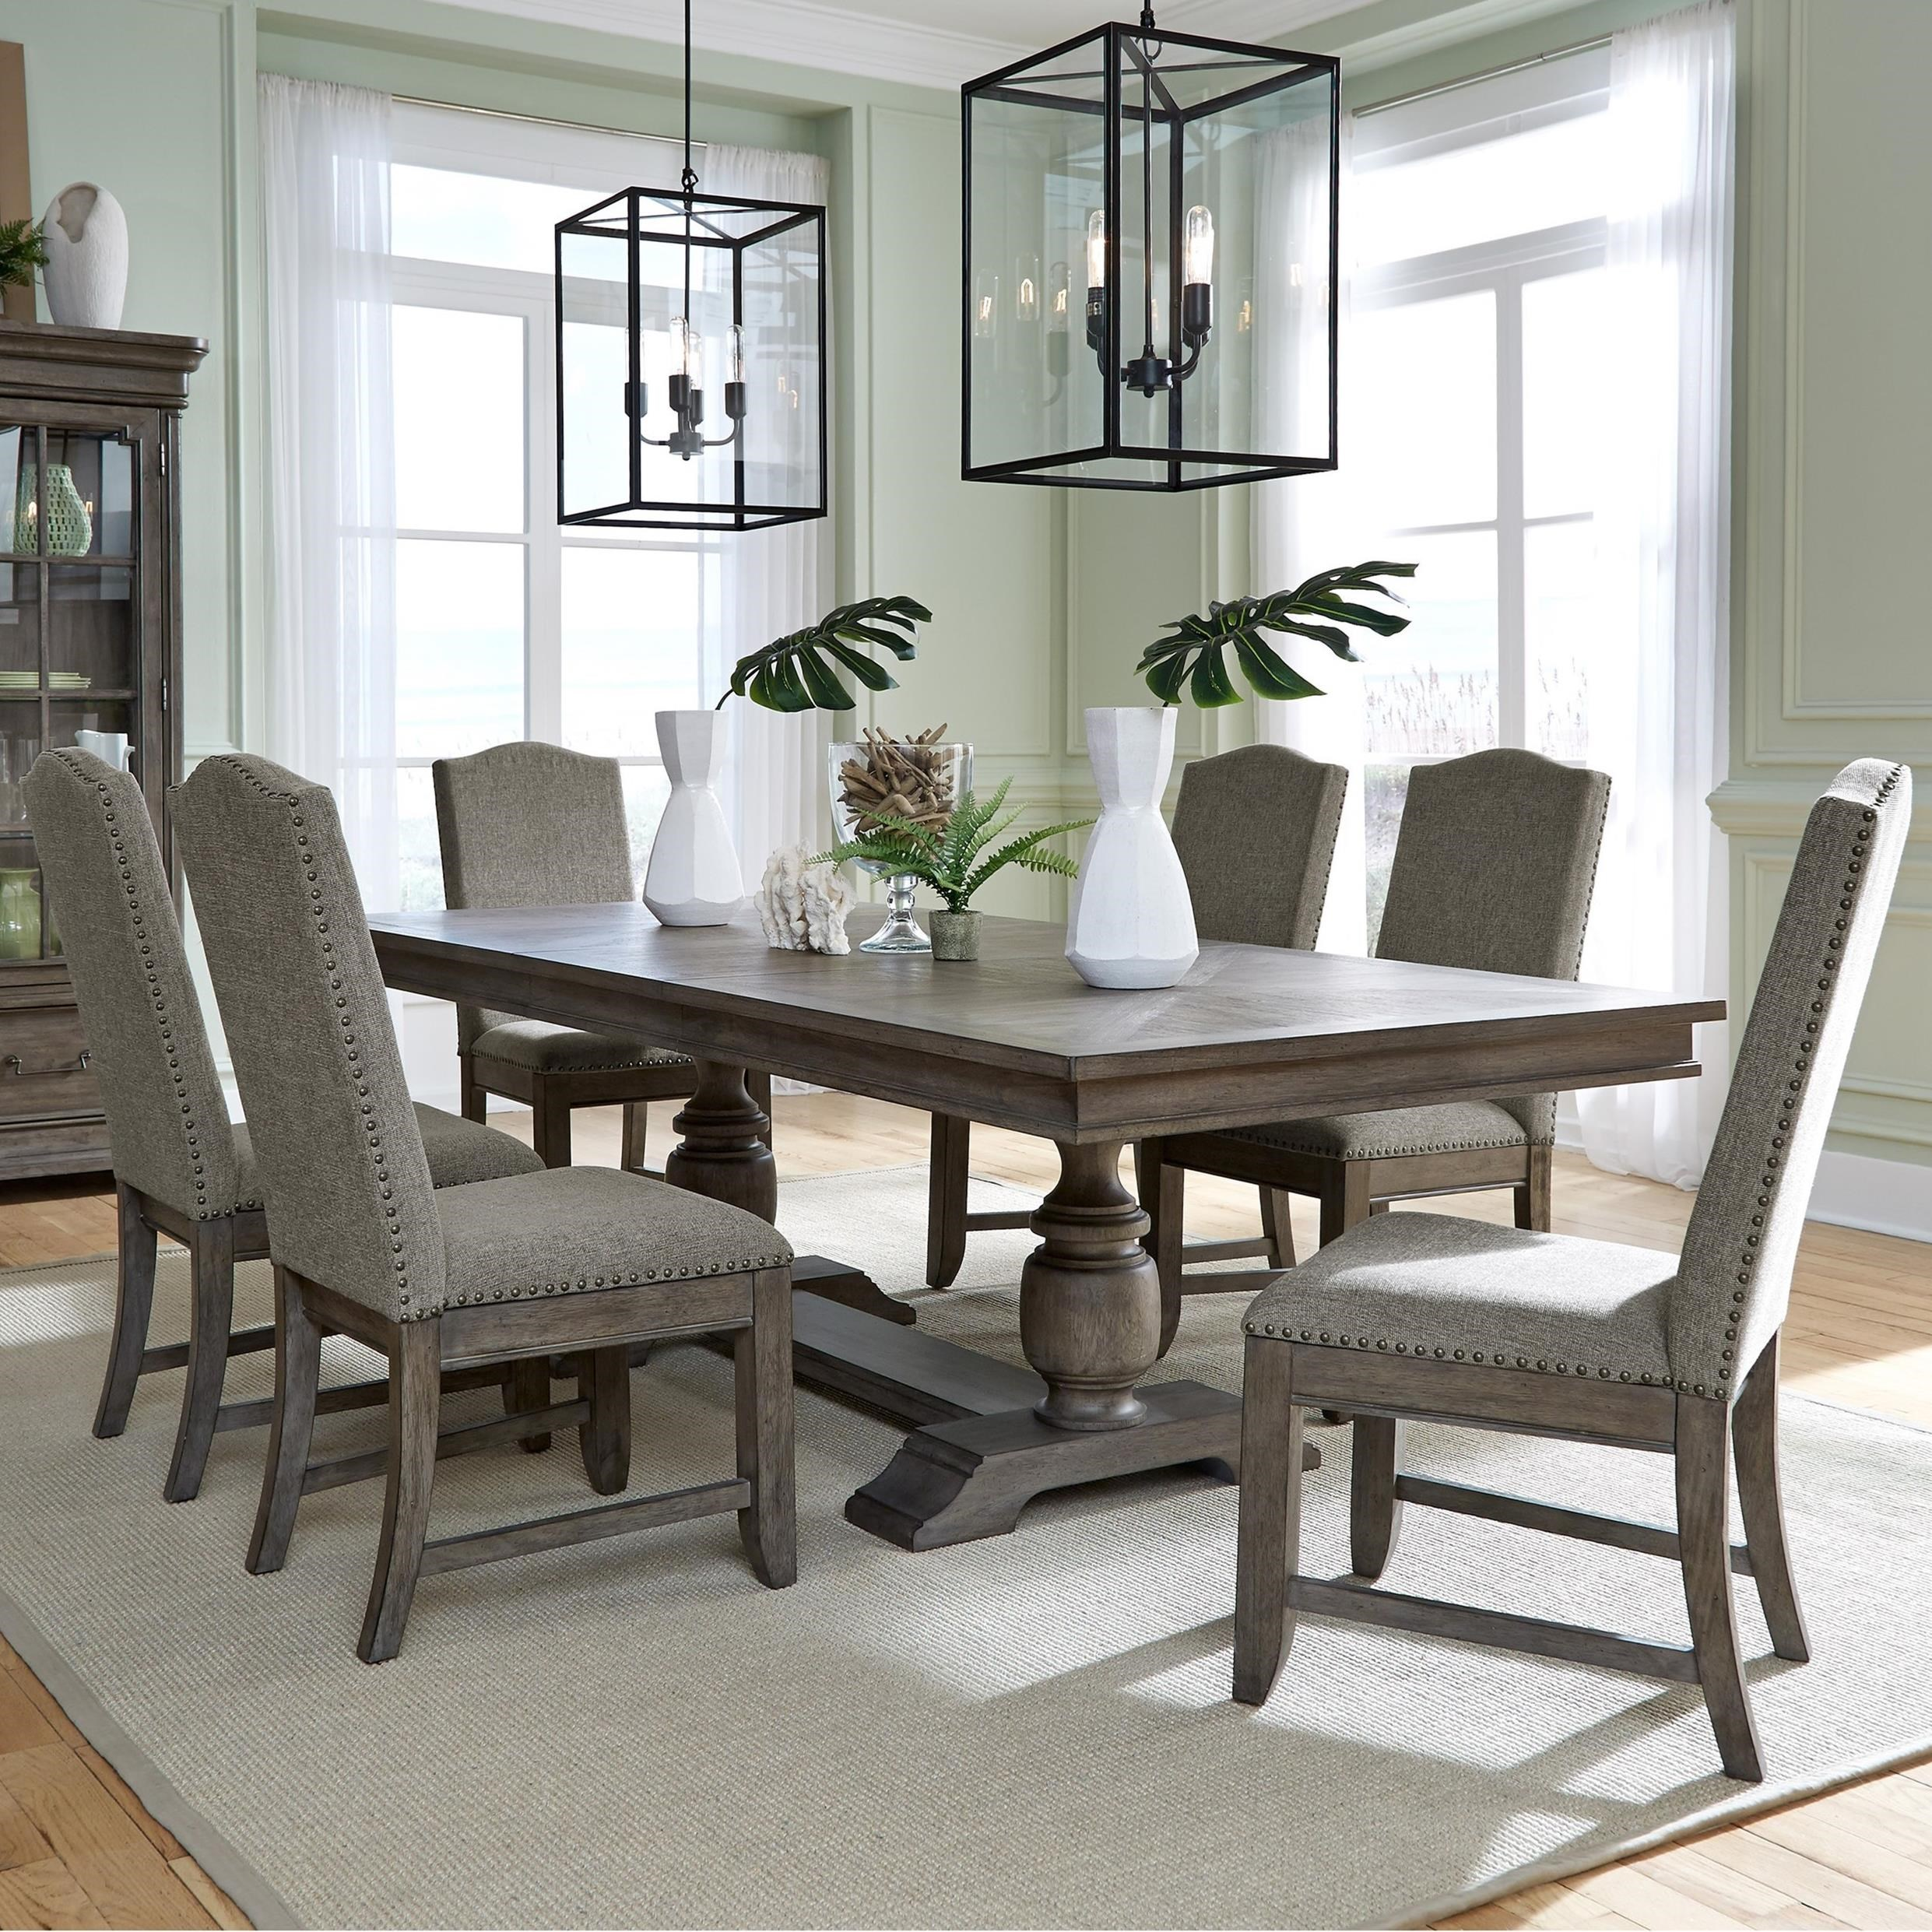 Samuel Lawrence Lasalle Traditional 7 Piece Trestle Dining Table And Upholstered Chair Set Story Lee Furniture Dining 7 Or More Piece Sets